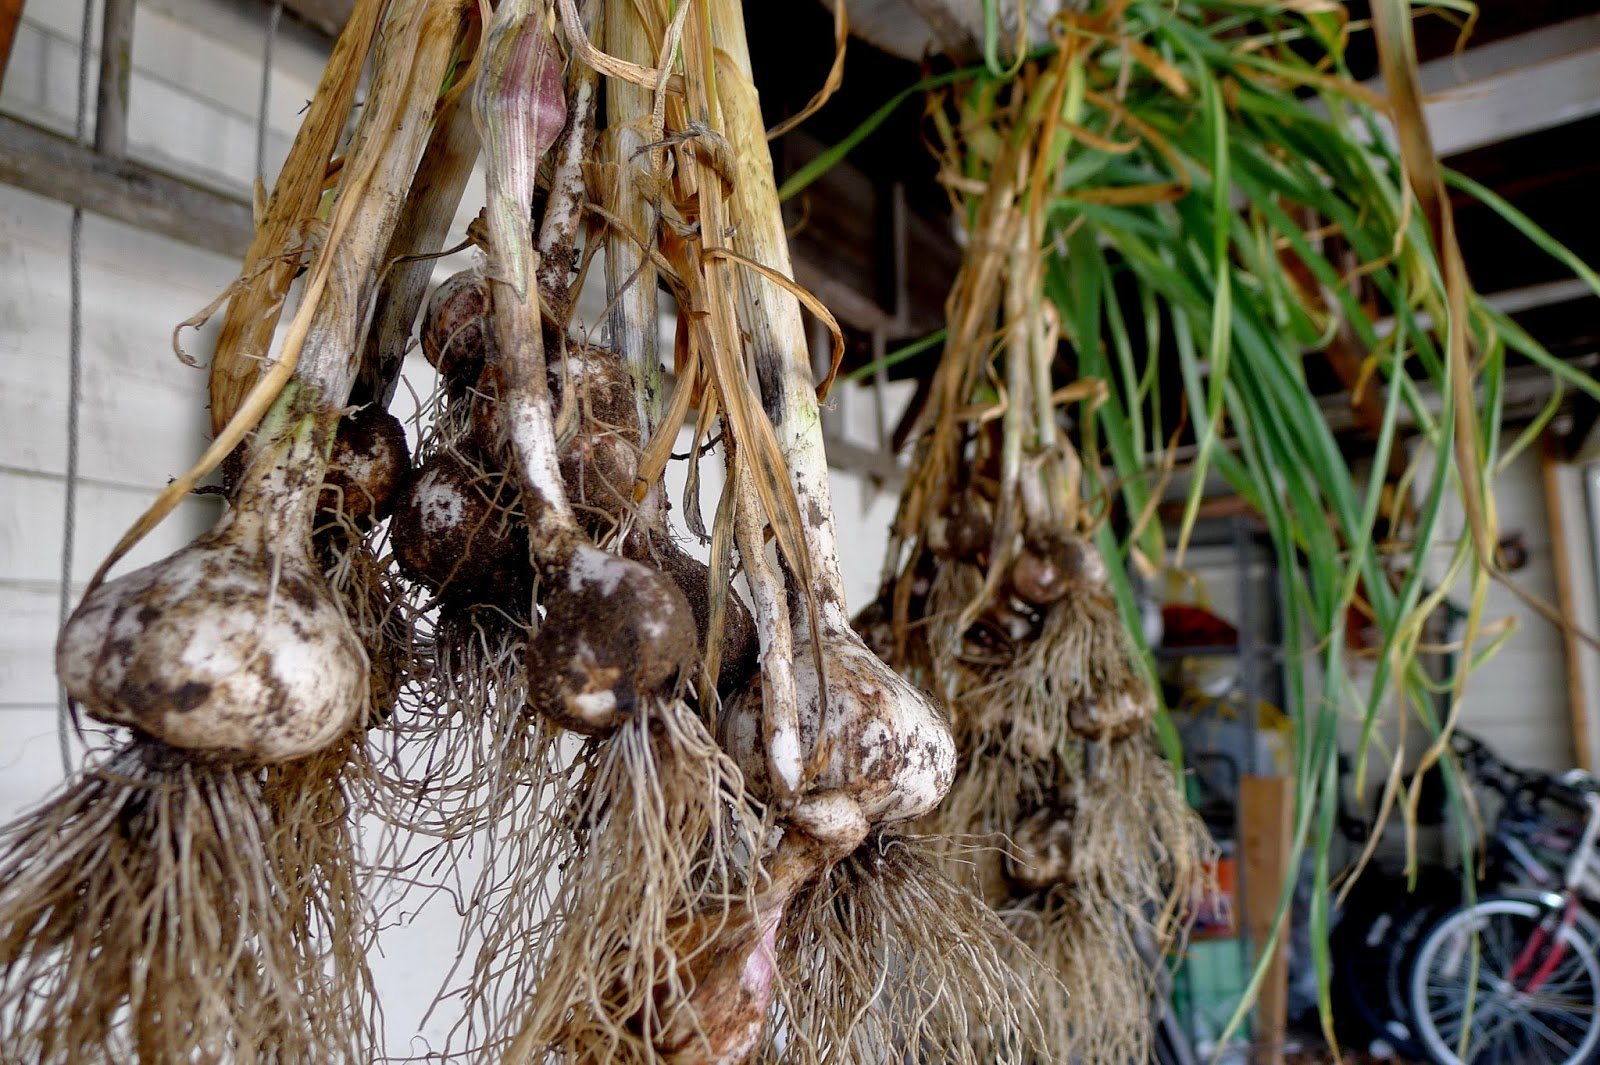 Curing garlic, preserving, urban farming